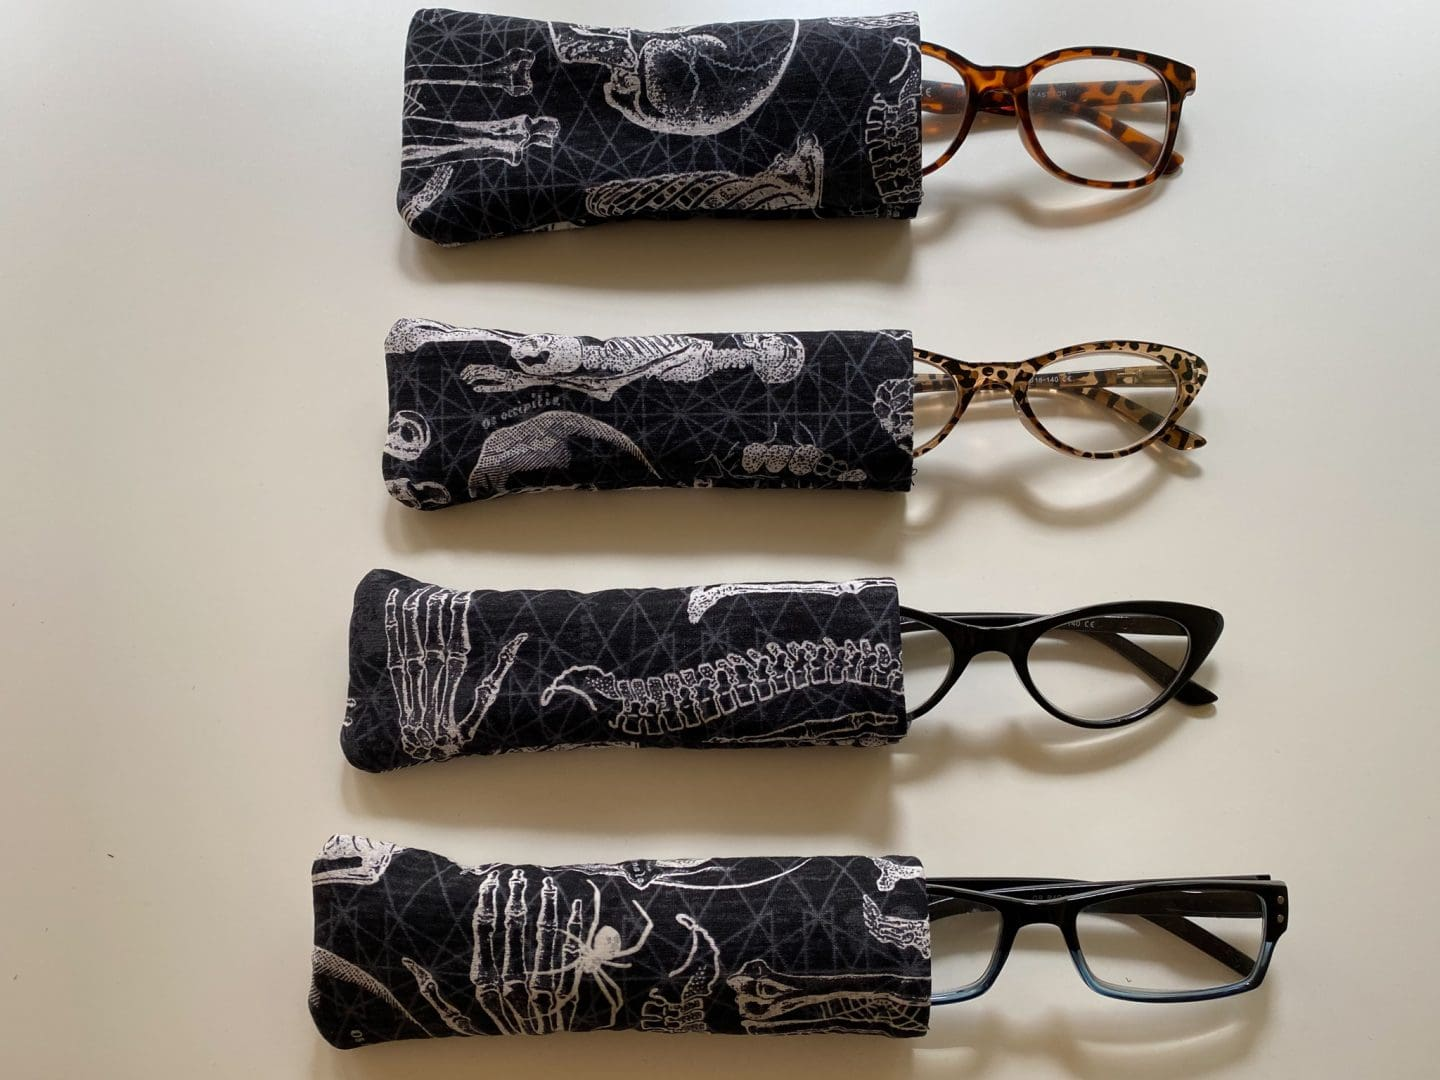 Image of four pairs of reading glasses peaking out of fabric cases with skeleton print